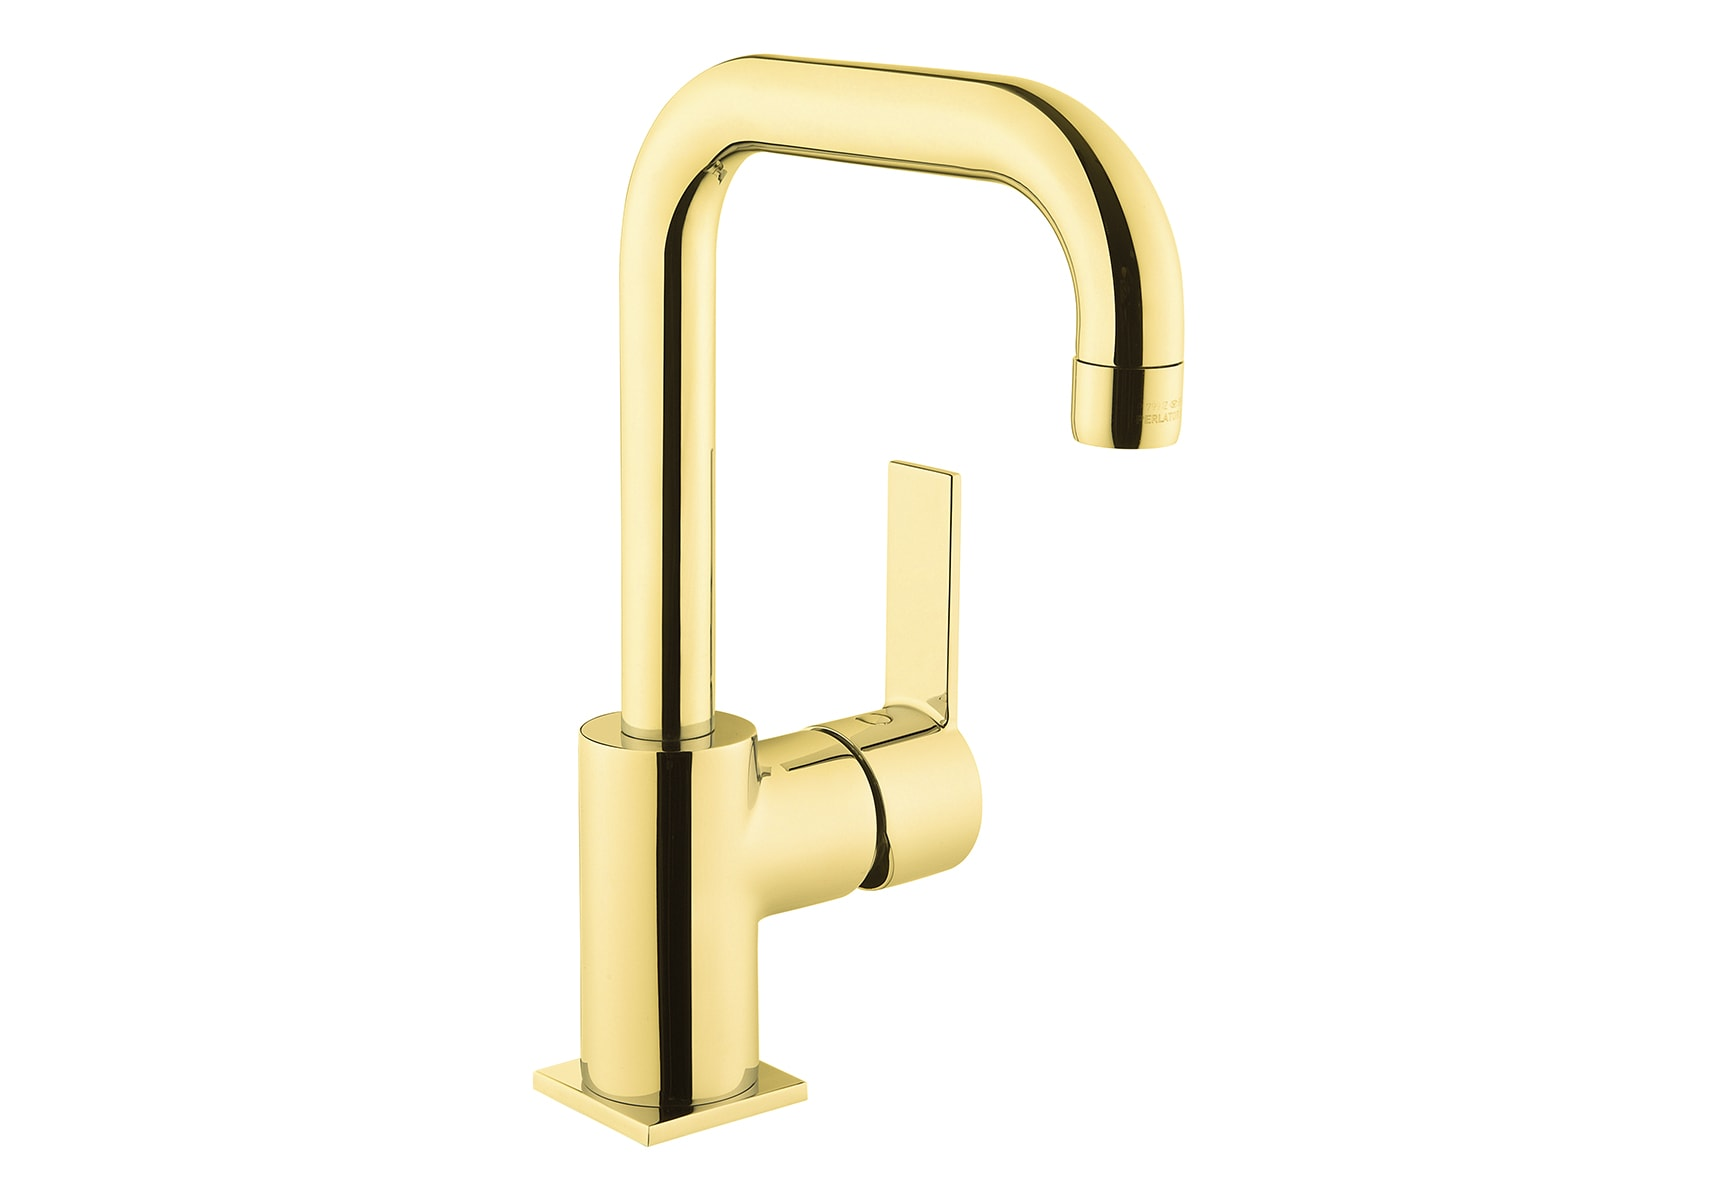 Flo S Basin Mixer , With Swivel Spout, Gold